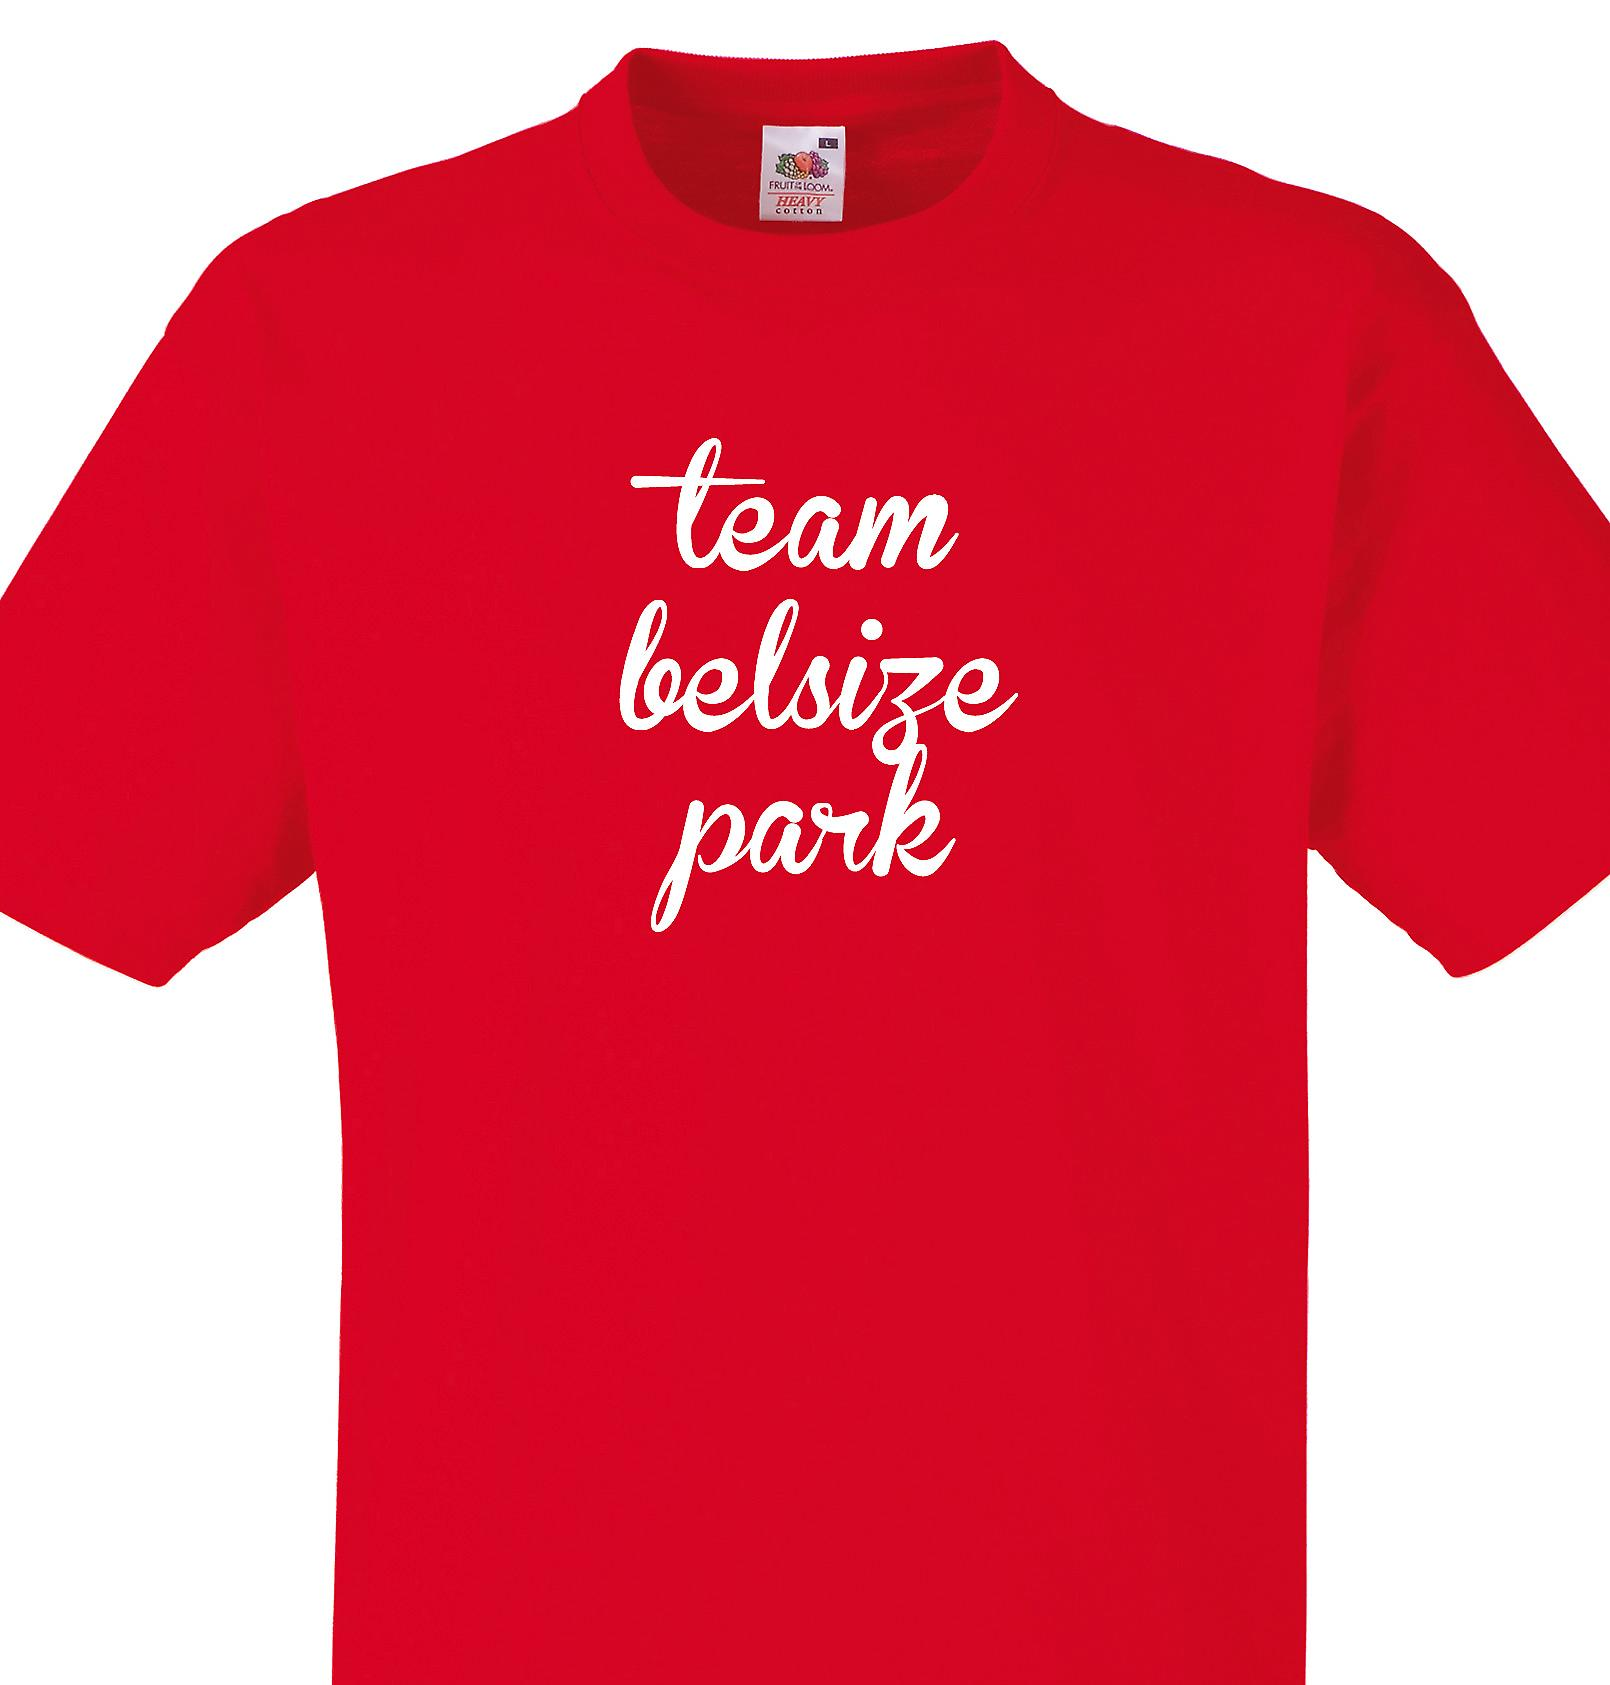 Team Belsize park Red T shirt